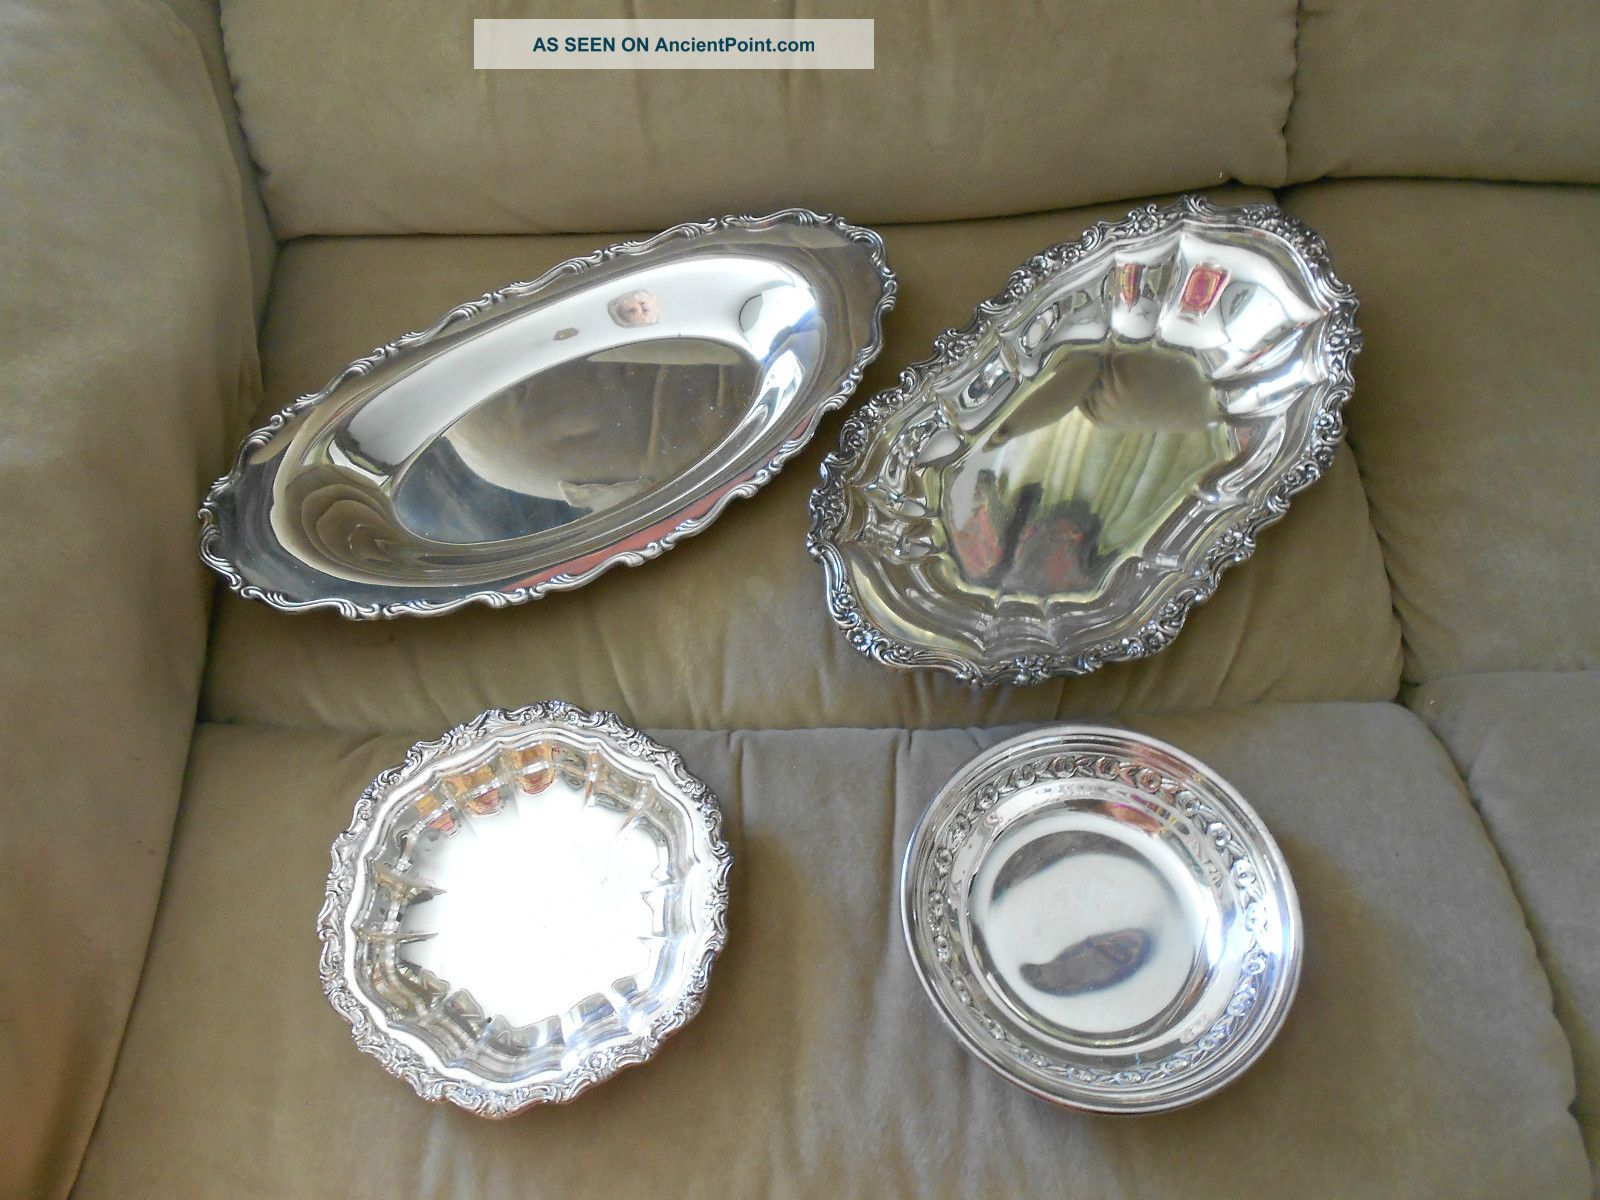 4 Vtg Silverplate Items: 2 Bread/cake Trays; 2 Dishes Platters & Trays photo